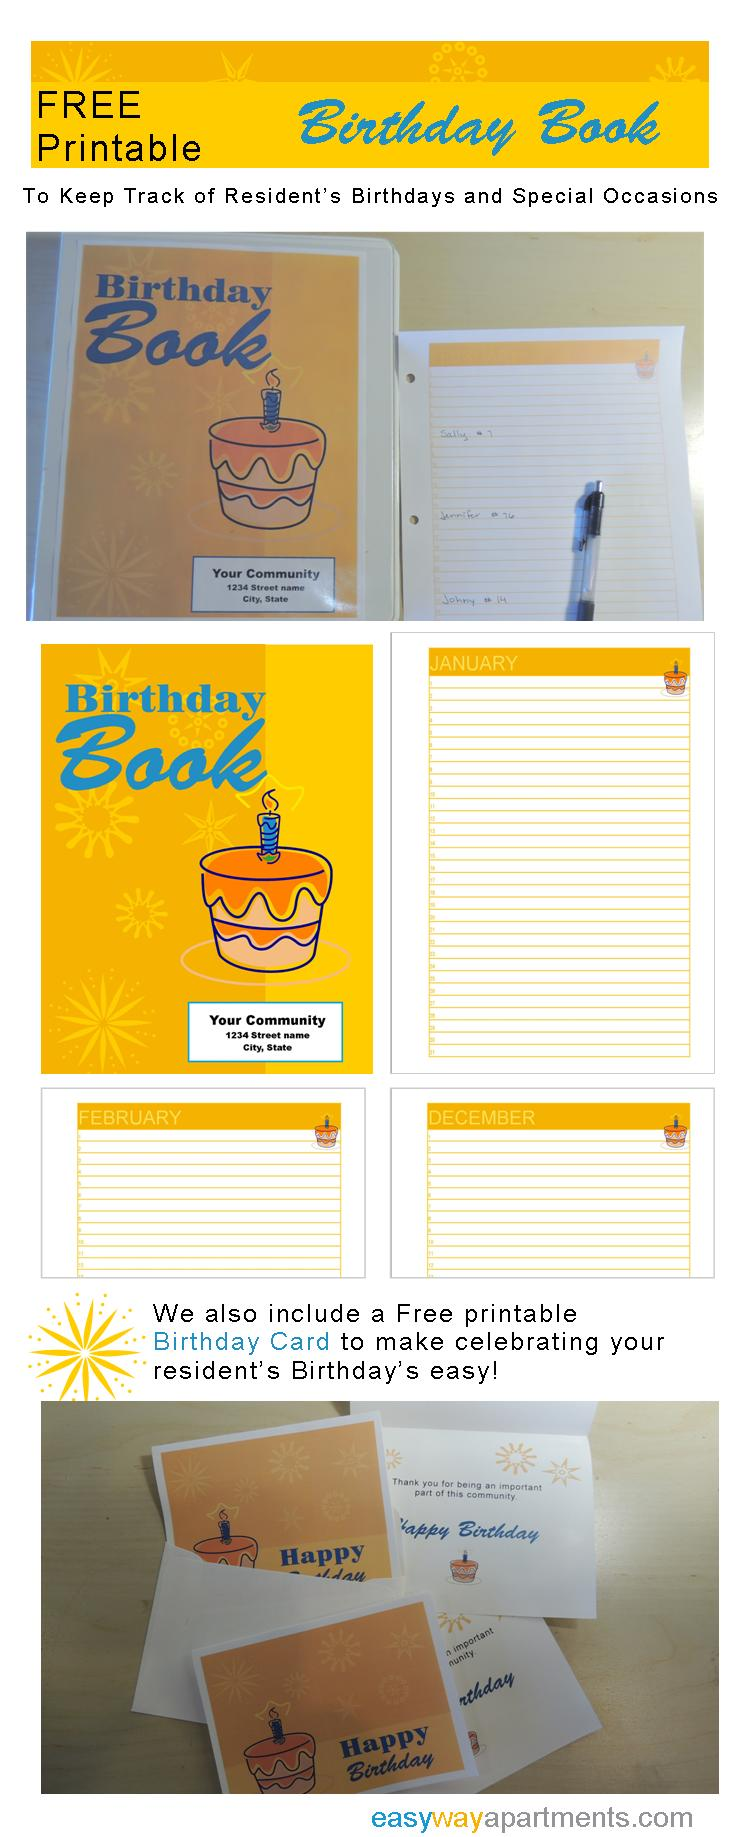 Birthday Book_ Keep track of resident's birthdays with this FREE printable from EasyWayApartments